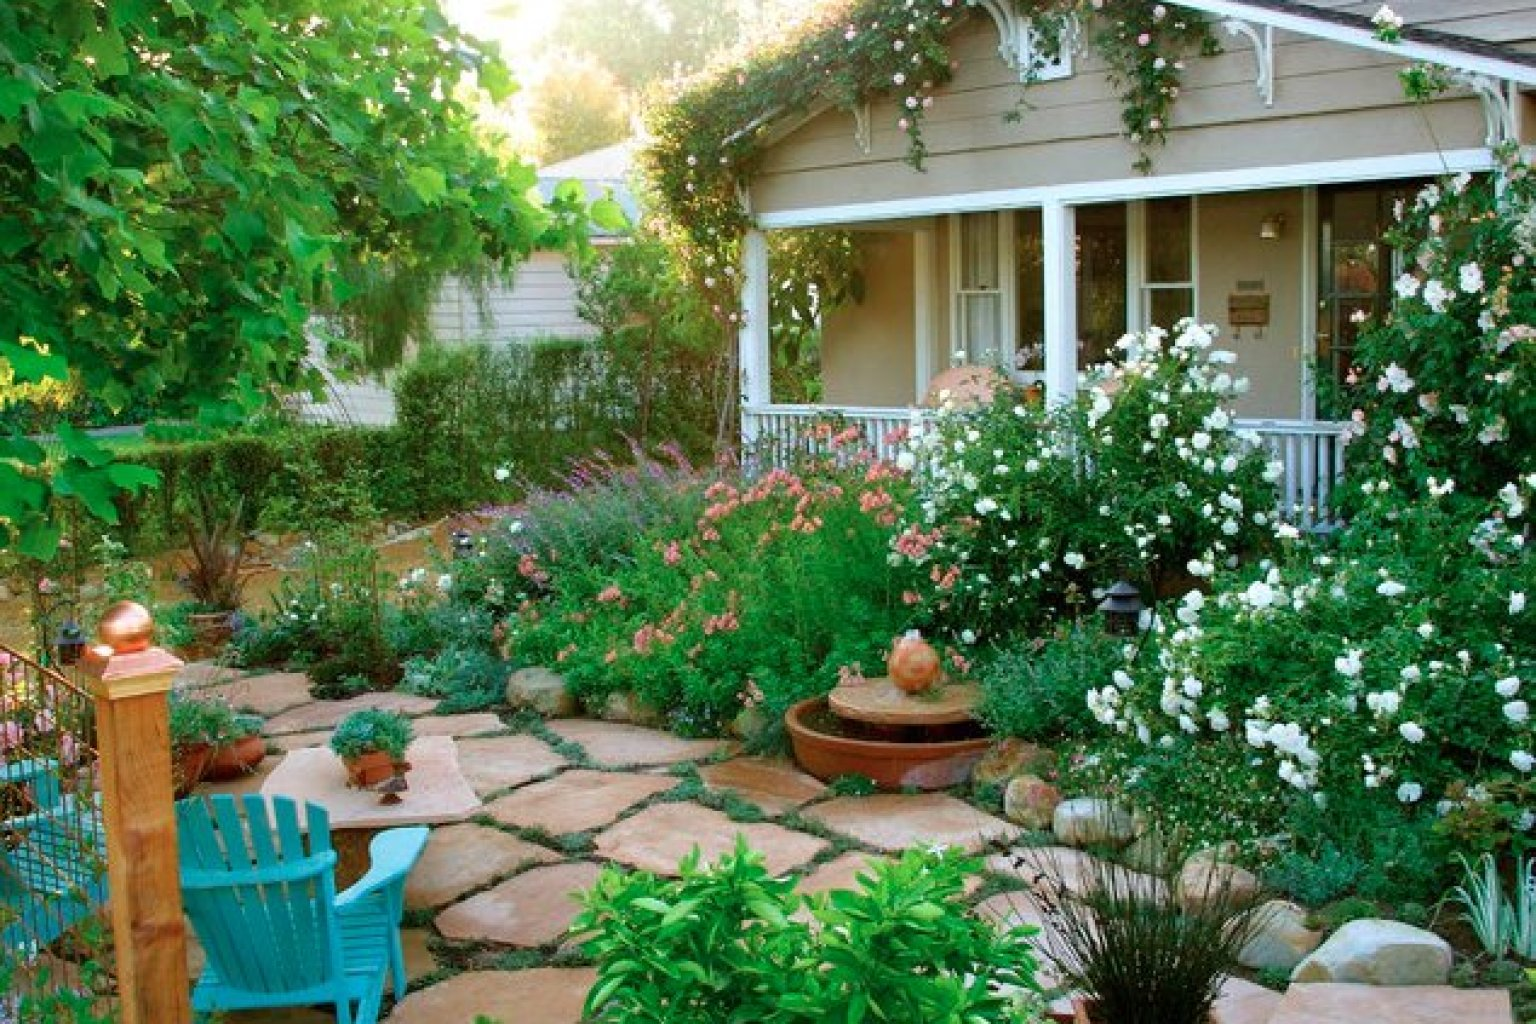 10 cottage gardens that are just too charming for words House and garden online